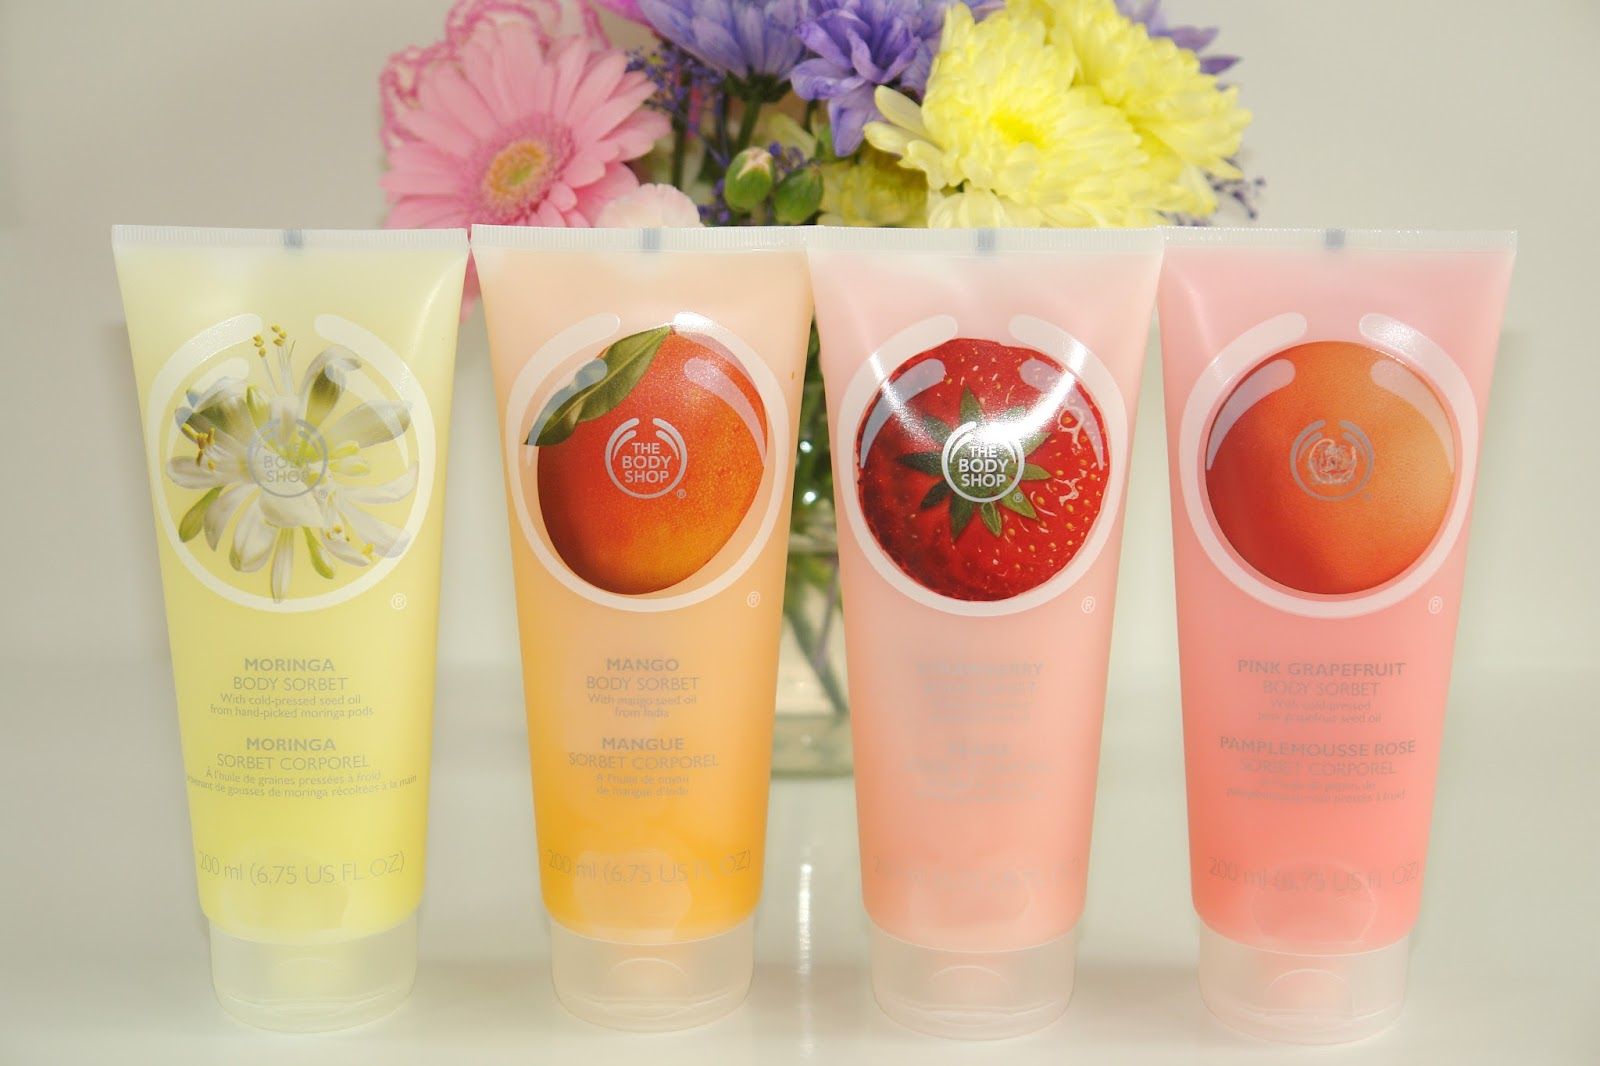 The Body Shop Body Sorbets, body care, UK blogger, beauty blogger, top UK blogger, The Body Shop, beauty, review, The Body Shop Body Sorbet Mango, The Body Shop Body Sorbet Strawberry, The Body Shop Body Sorbet Pink Grapefruit, The Body Shop Body Sorbet Satsuma, The Body Shop Body Sorbet Moringa